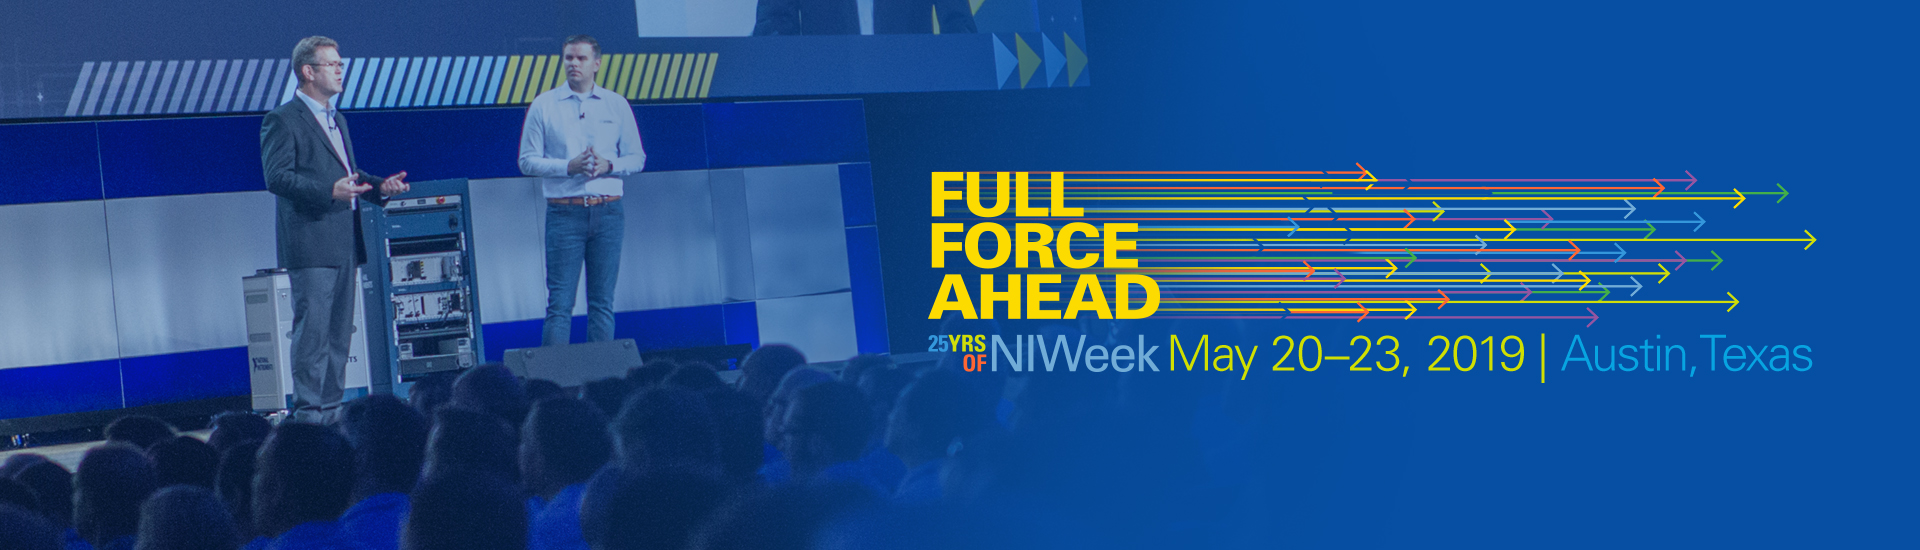 NIWeek_2019_Current_feature